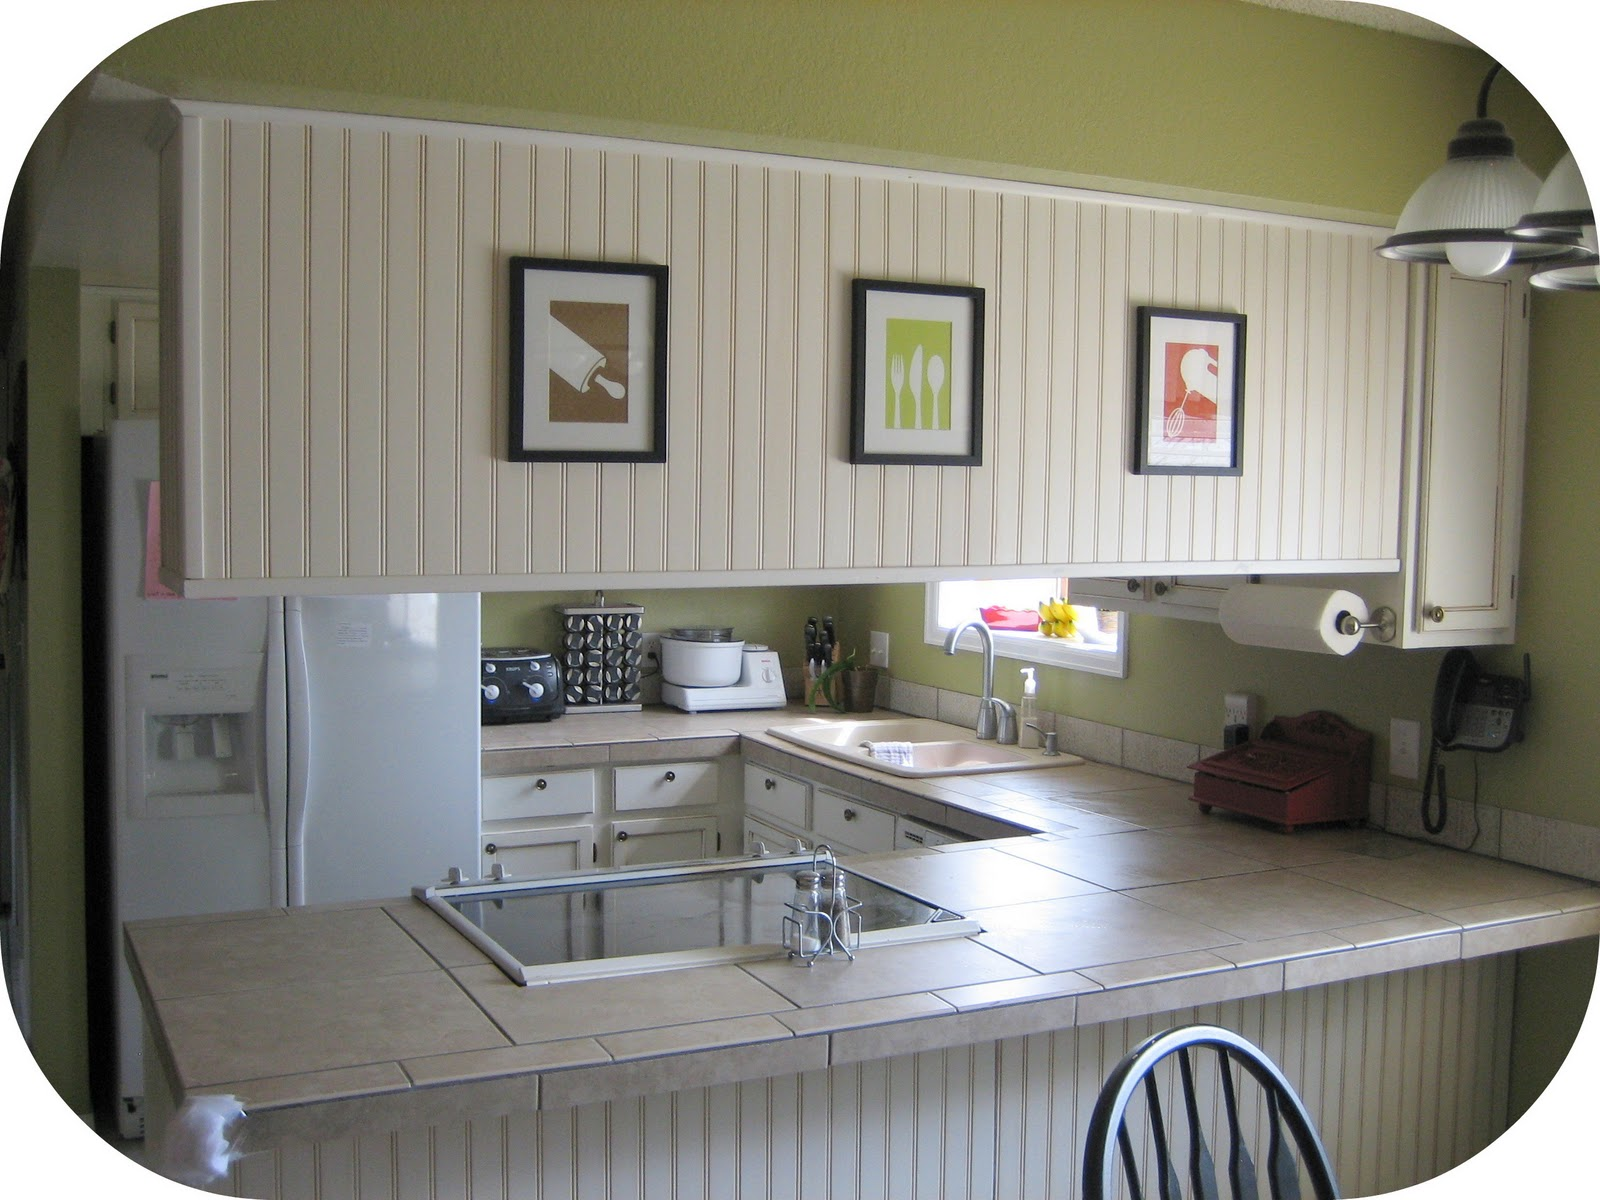 Art Prints for Kitchen Cabinets